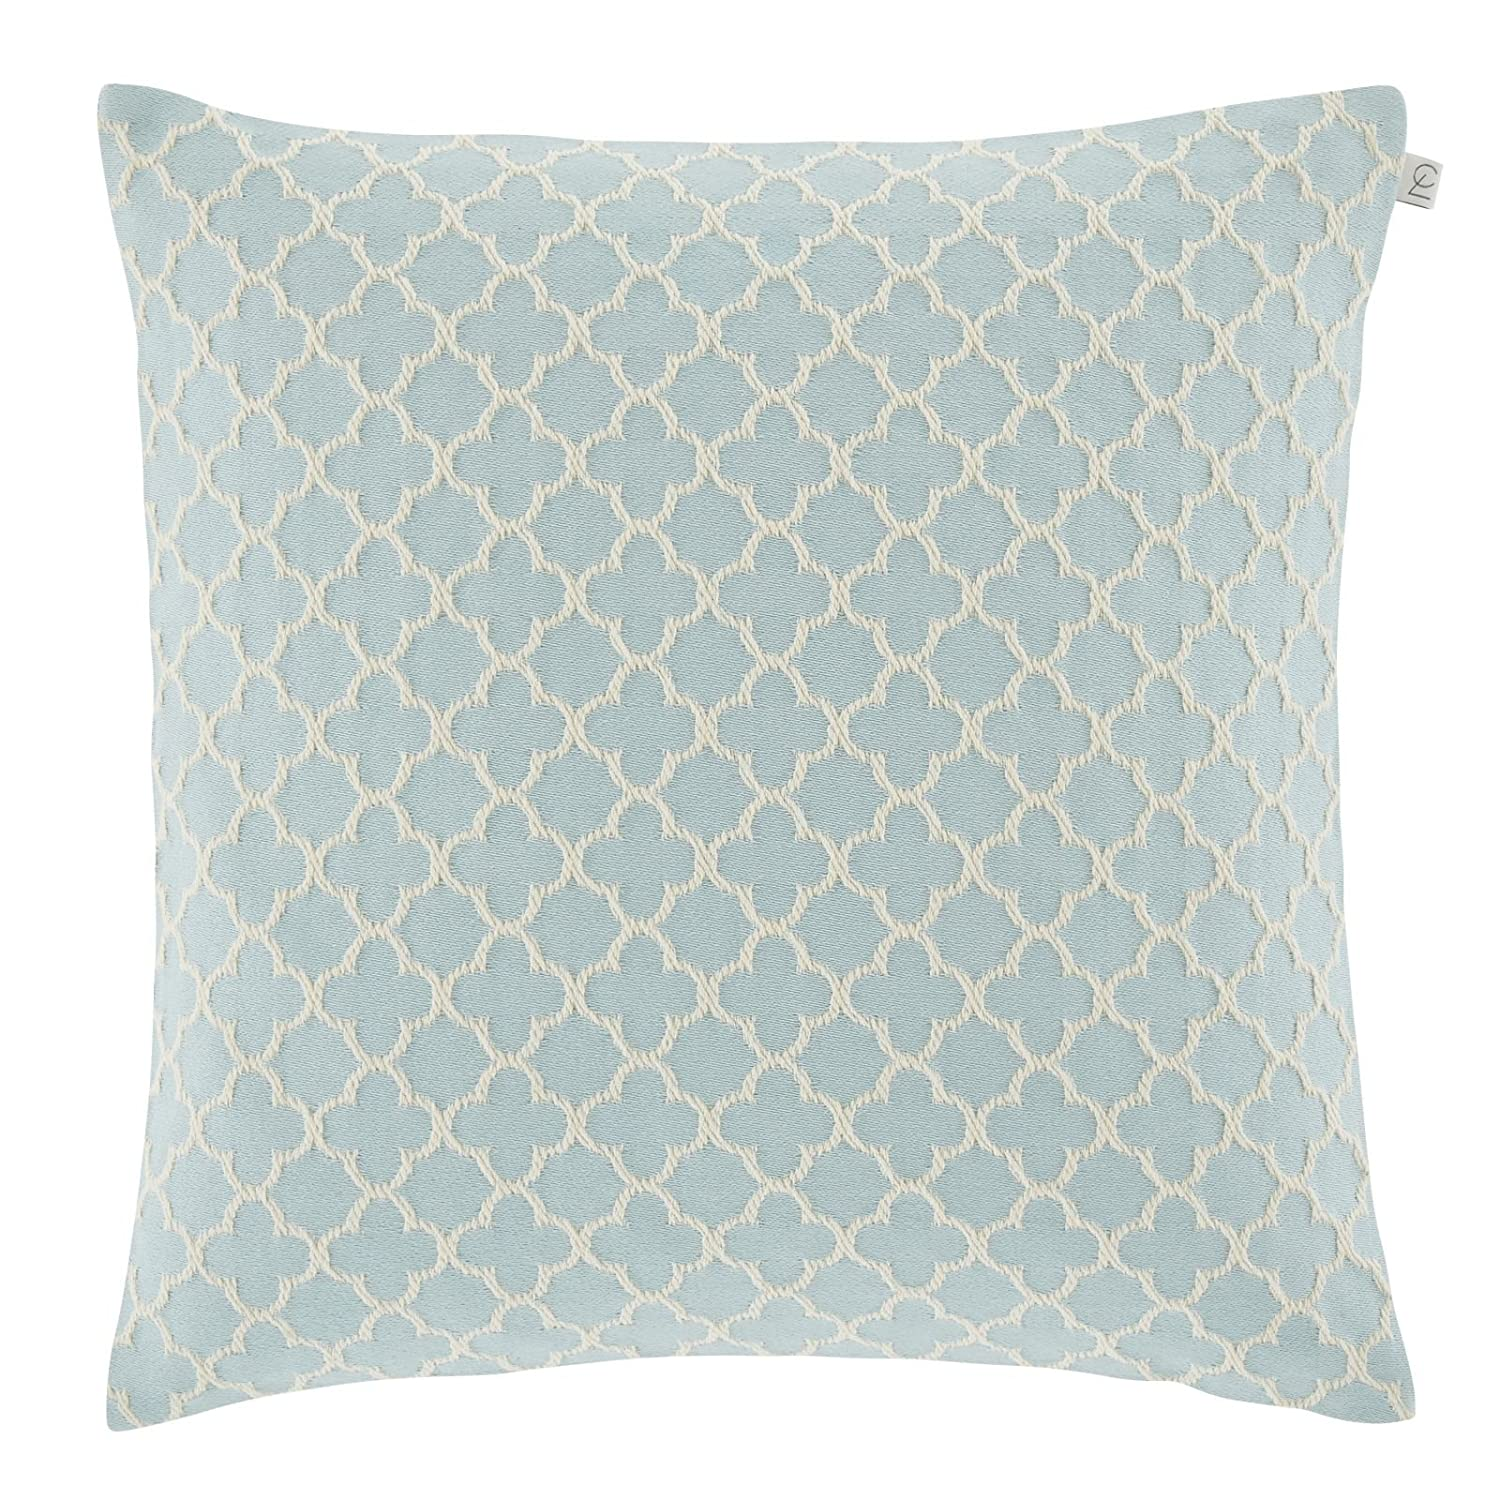 Catherine Lansfield Eastern Housse de Coussin, Menthe, Cushion Cover - Mint Turner Bianca DS/48565/W/CC45/MIN